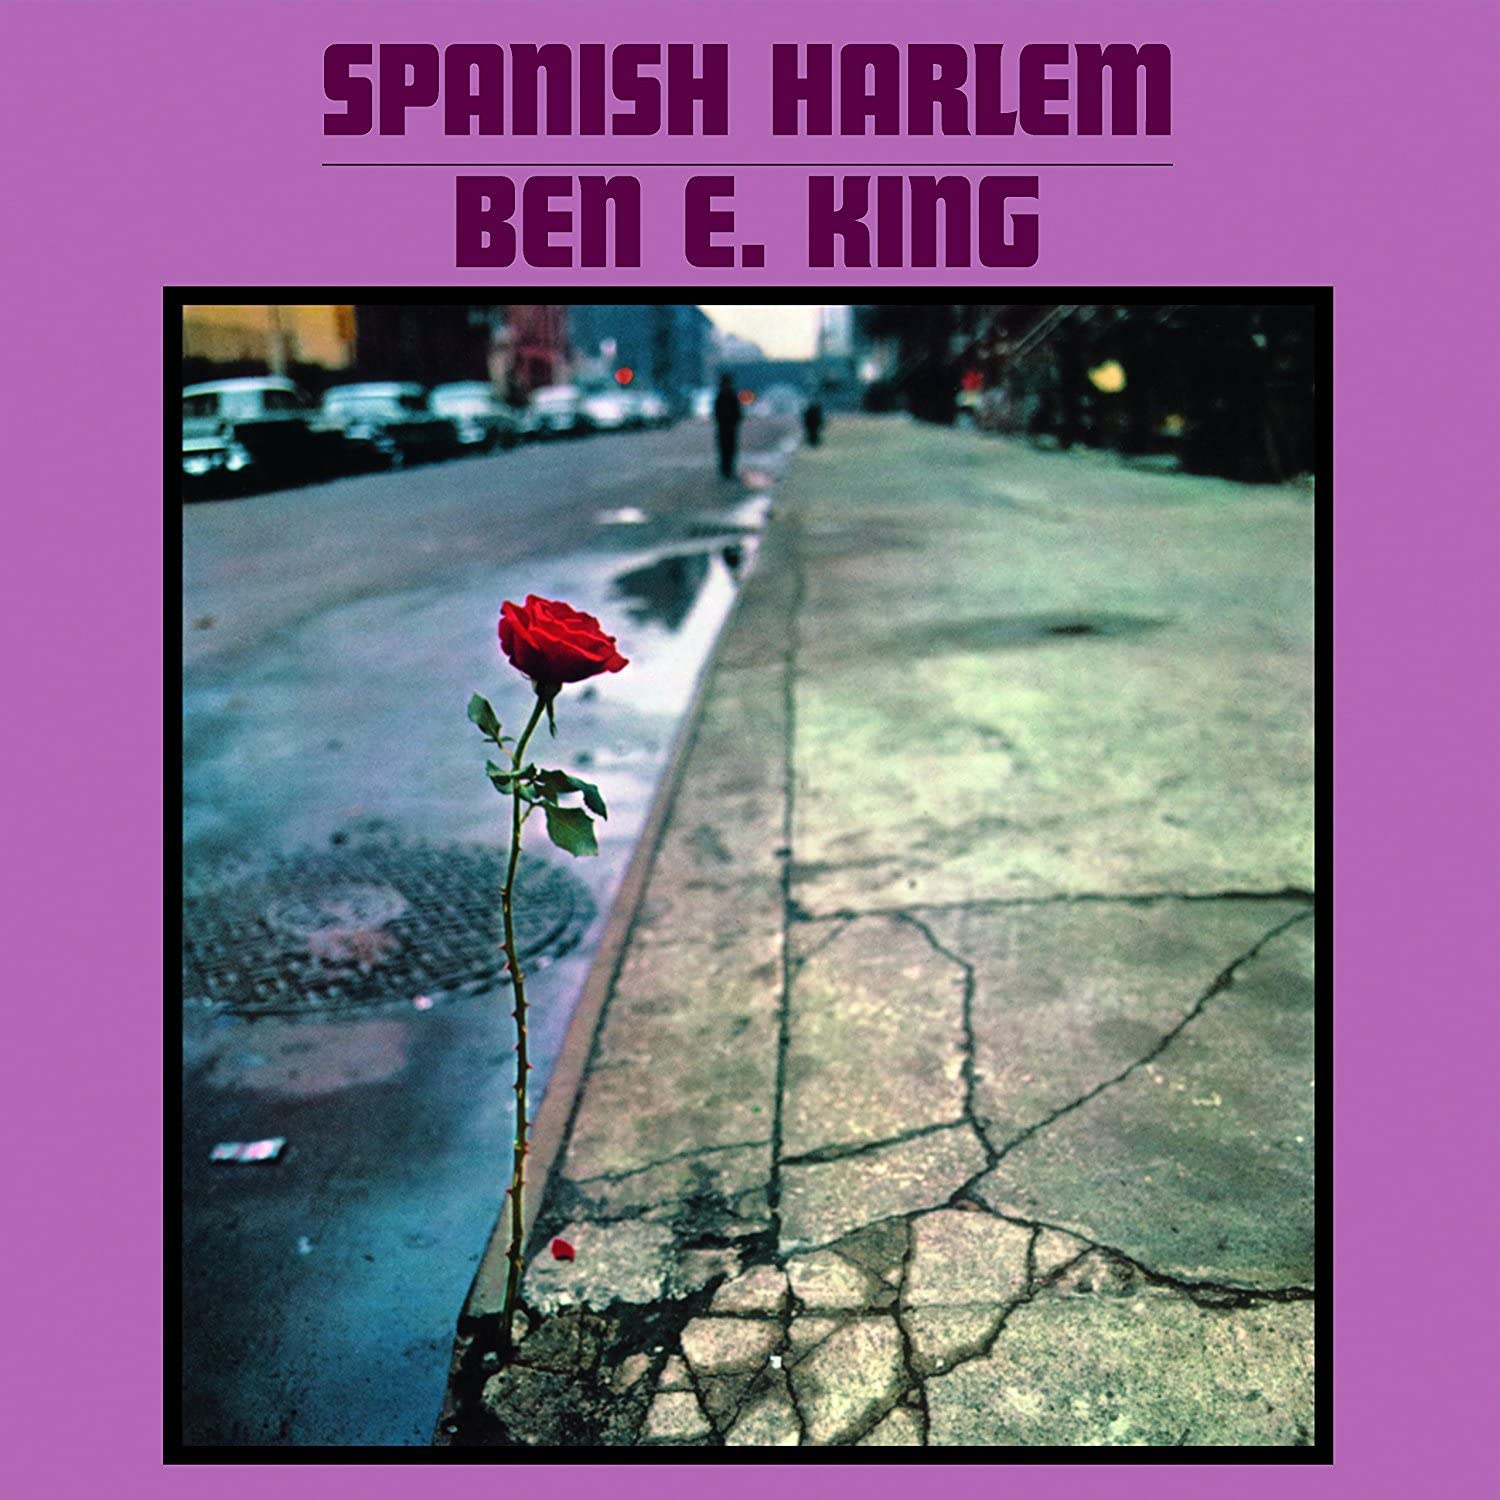 king ben e. spanish harlem [vinile] king ben e.